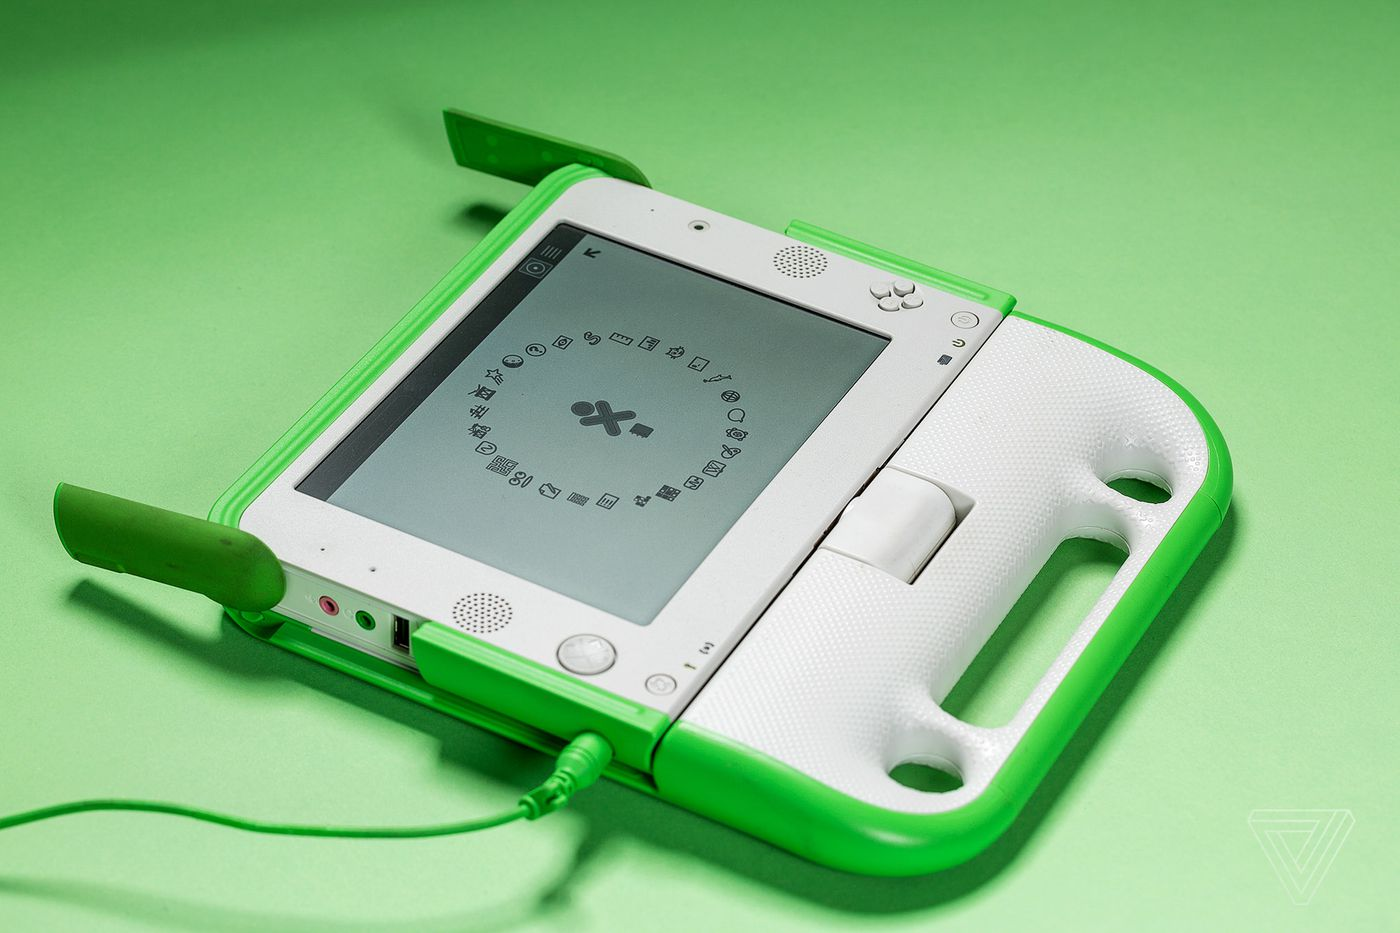 OLPC's $100 laptop was going to change the world — then it all went